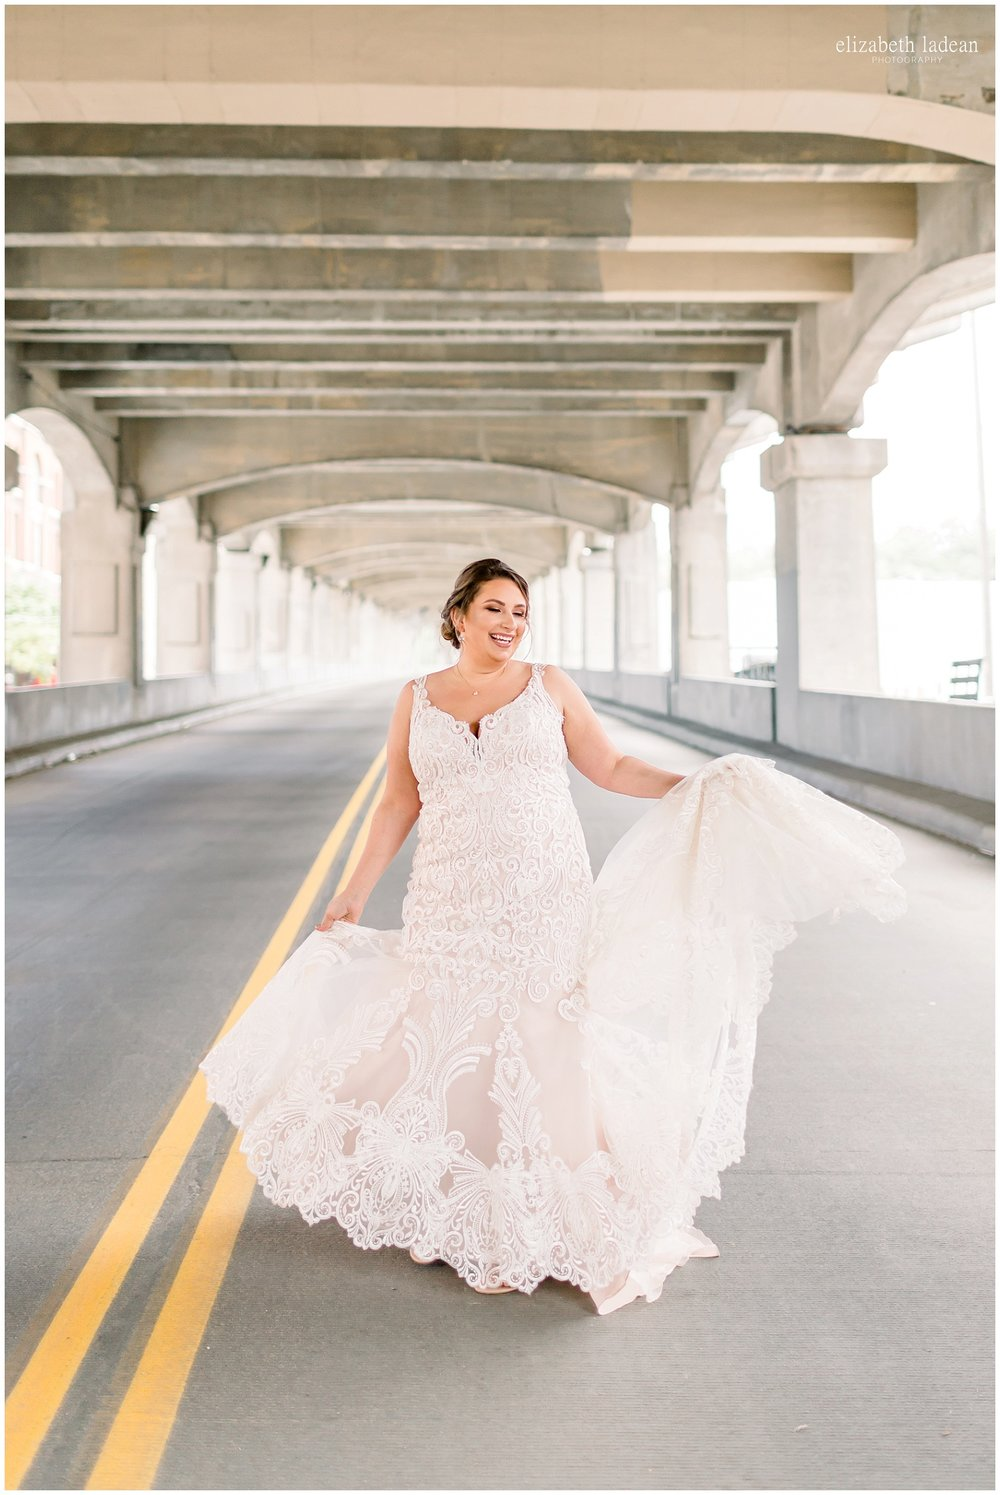 -Adventurous-Kansas-City-Worldwide-Wedding-Photographer-2018-elizabeth-ladean-photography-photo_3238.jpg